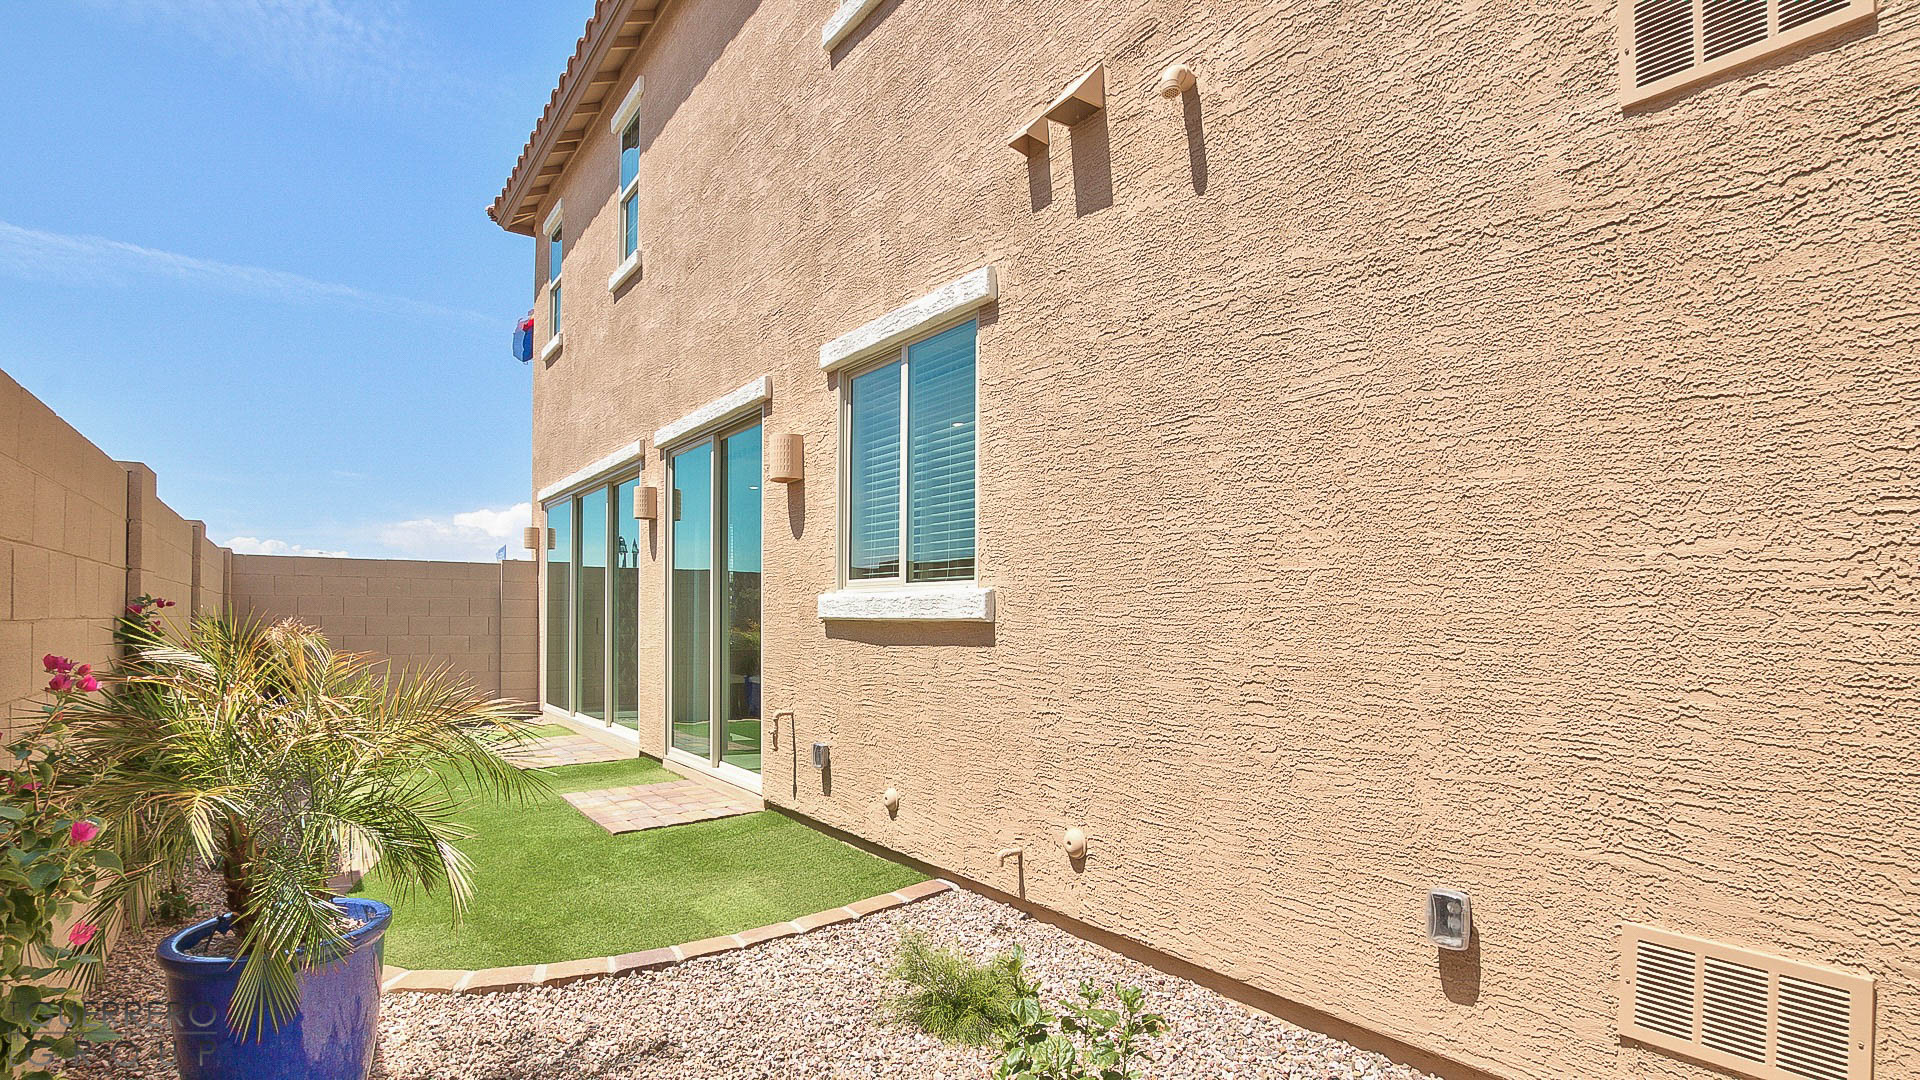 New Homes Builds In Chandler Az